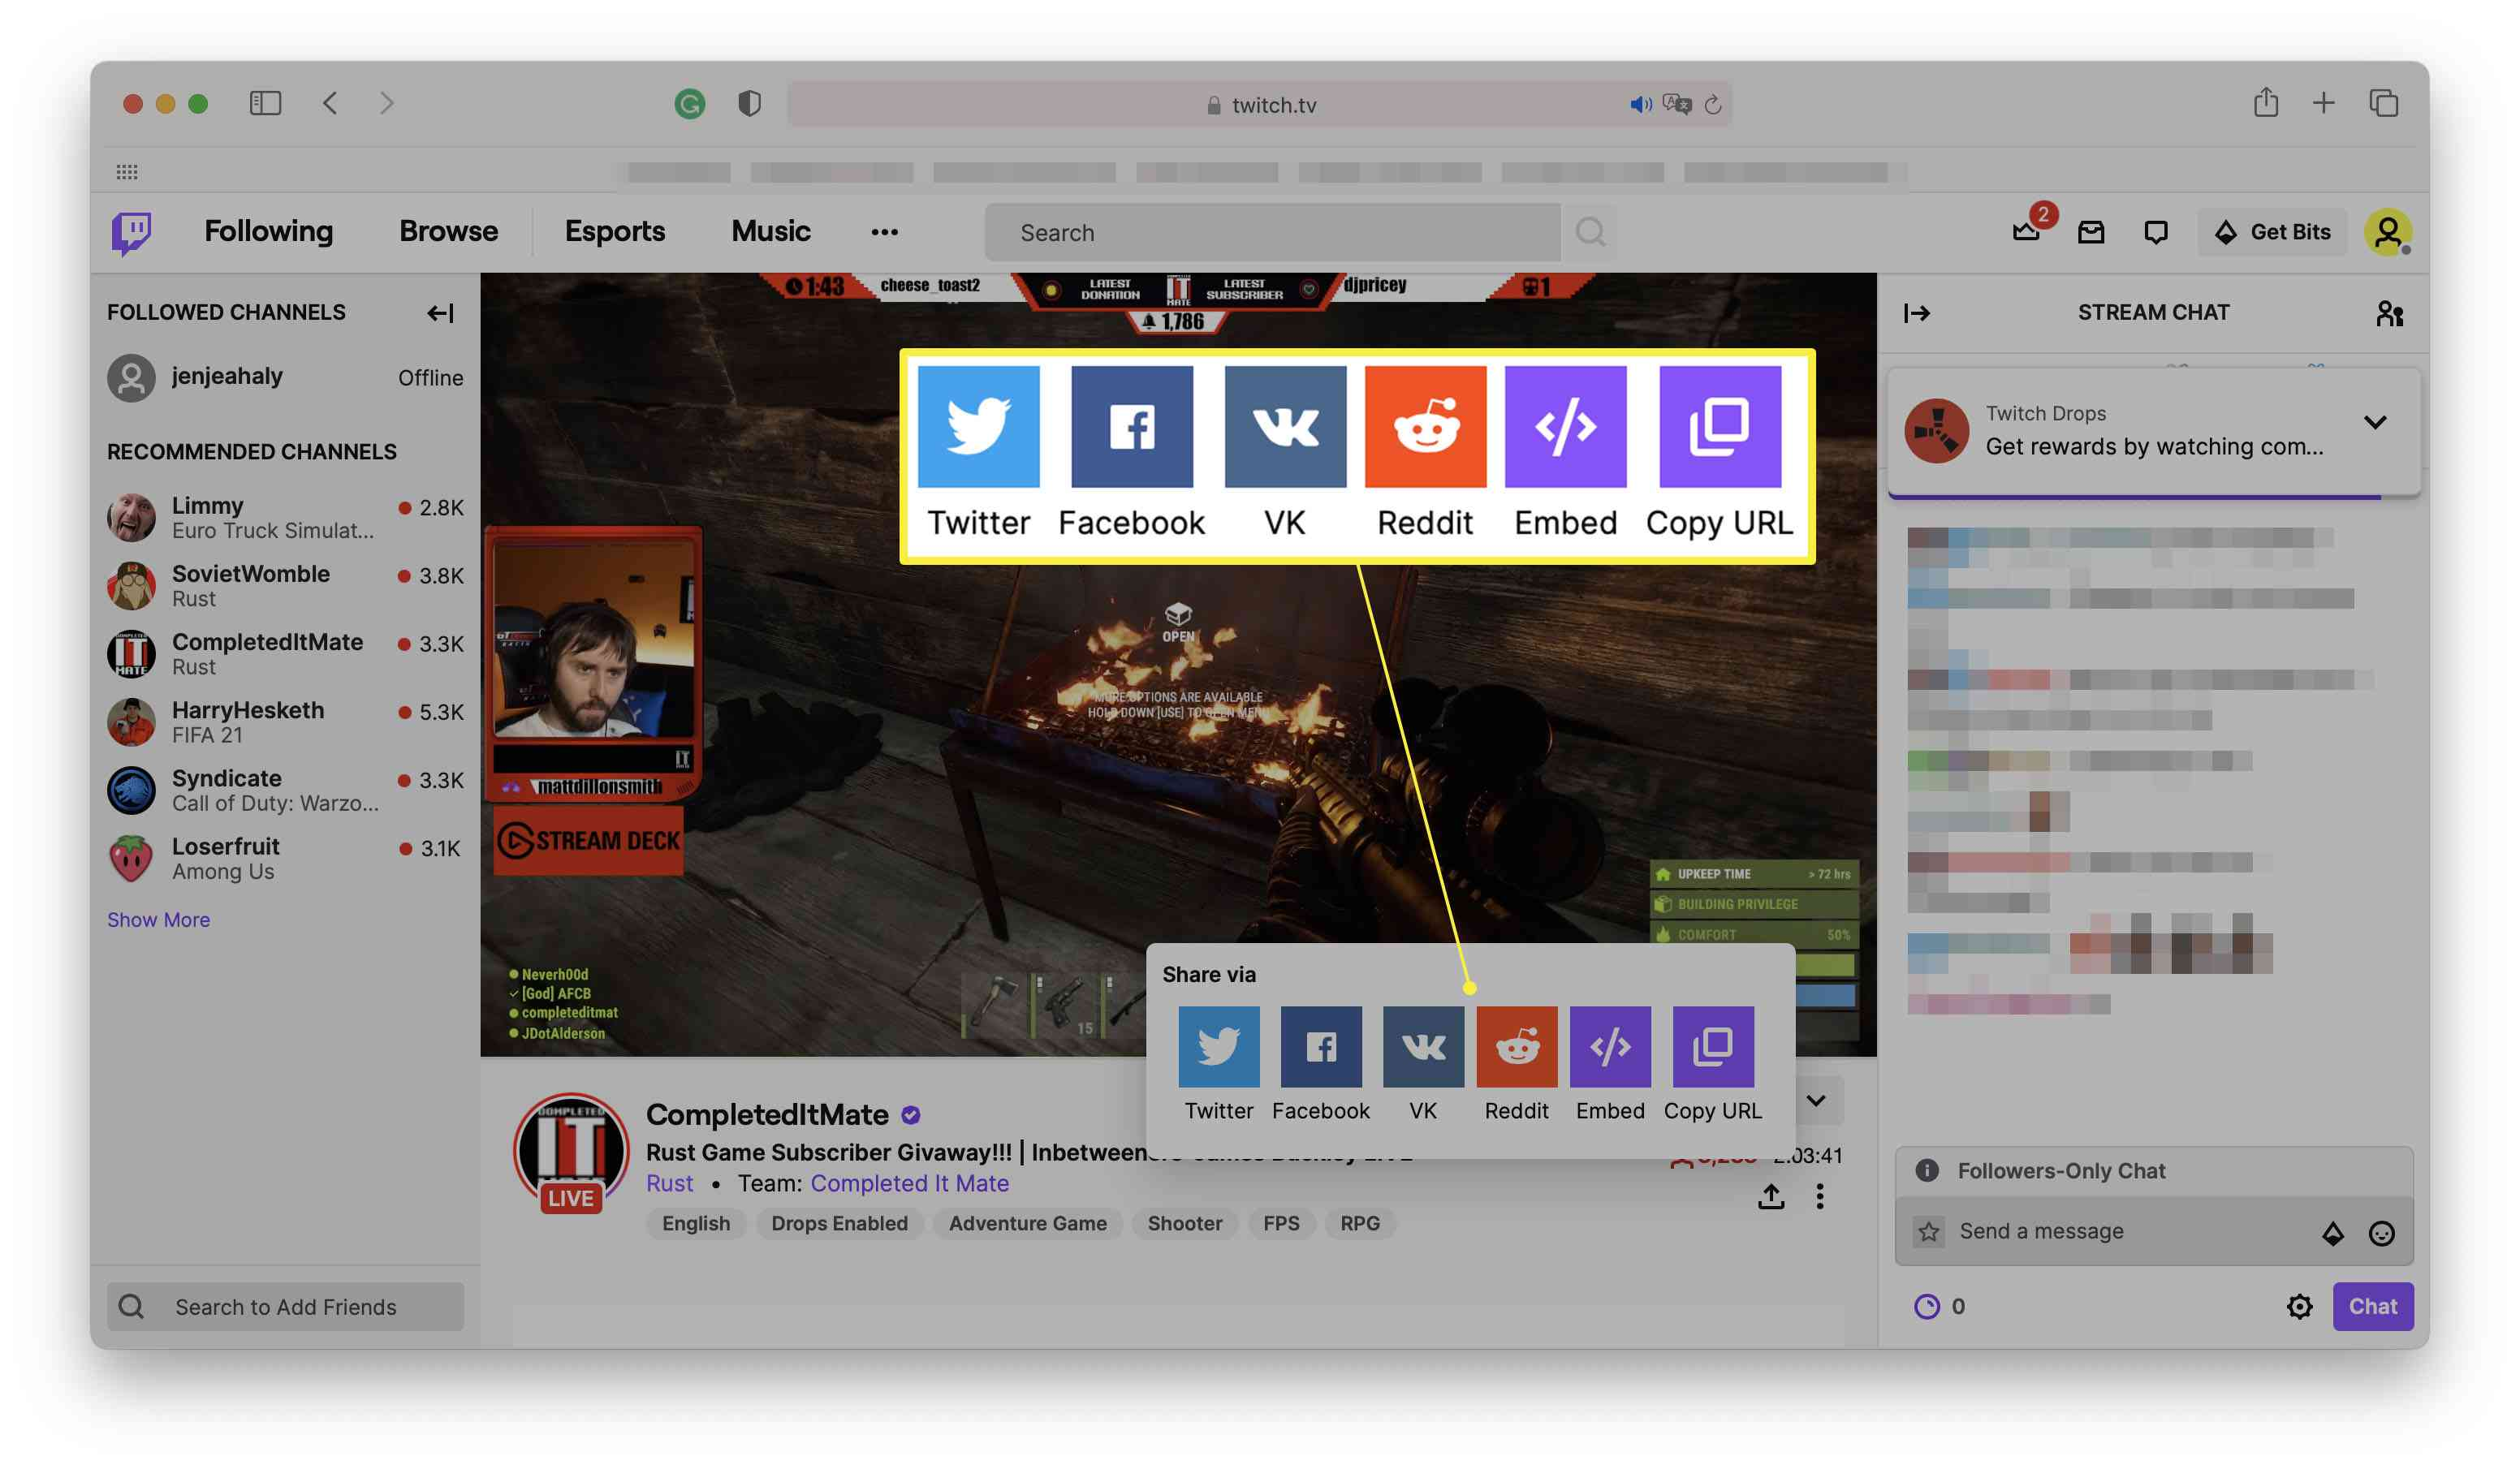 Twitch with a broadcast streaming and the Share via social media icons highlighted